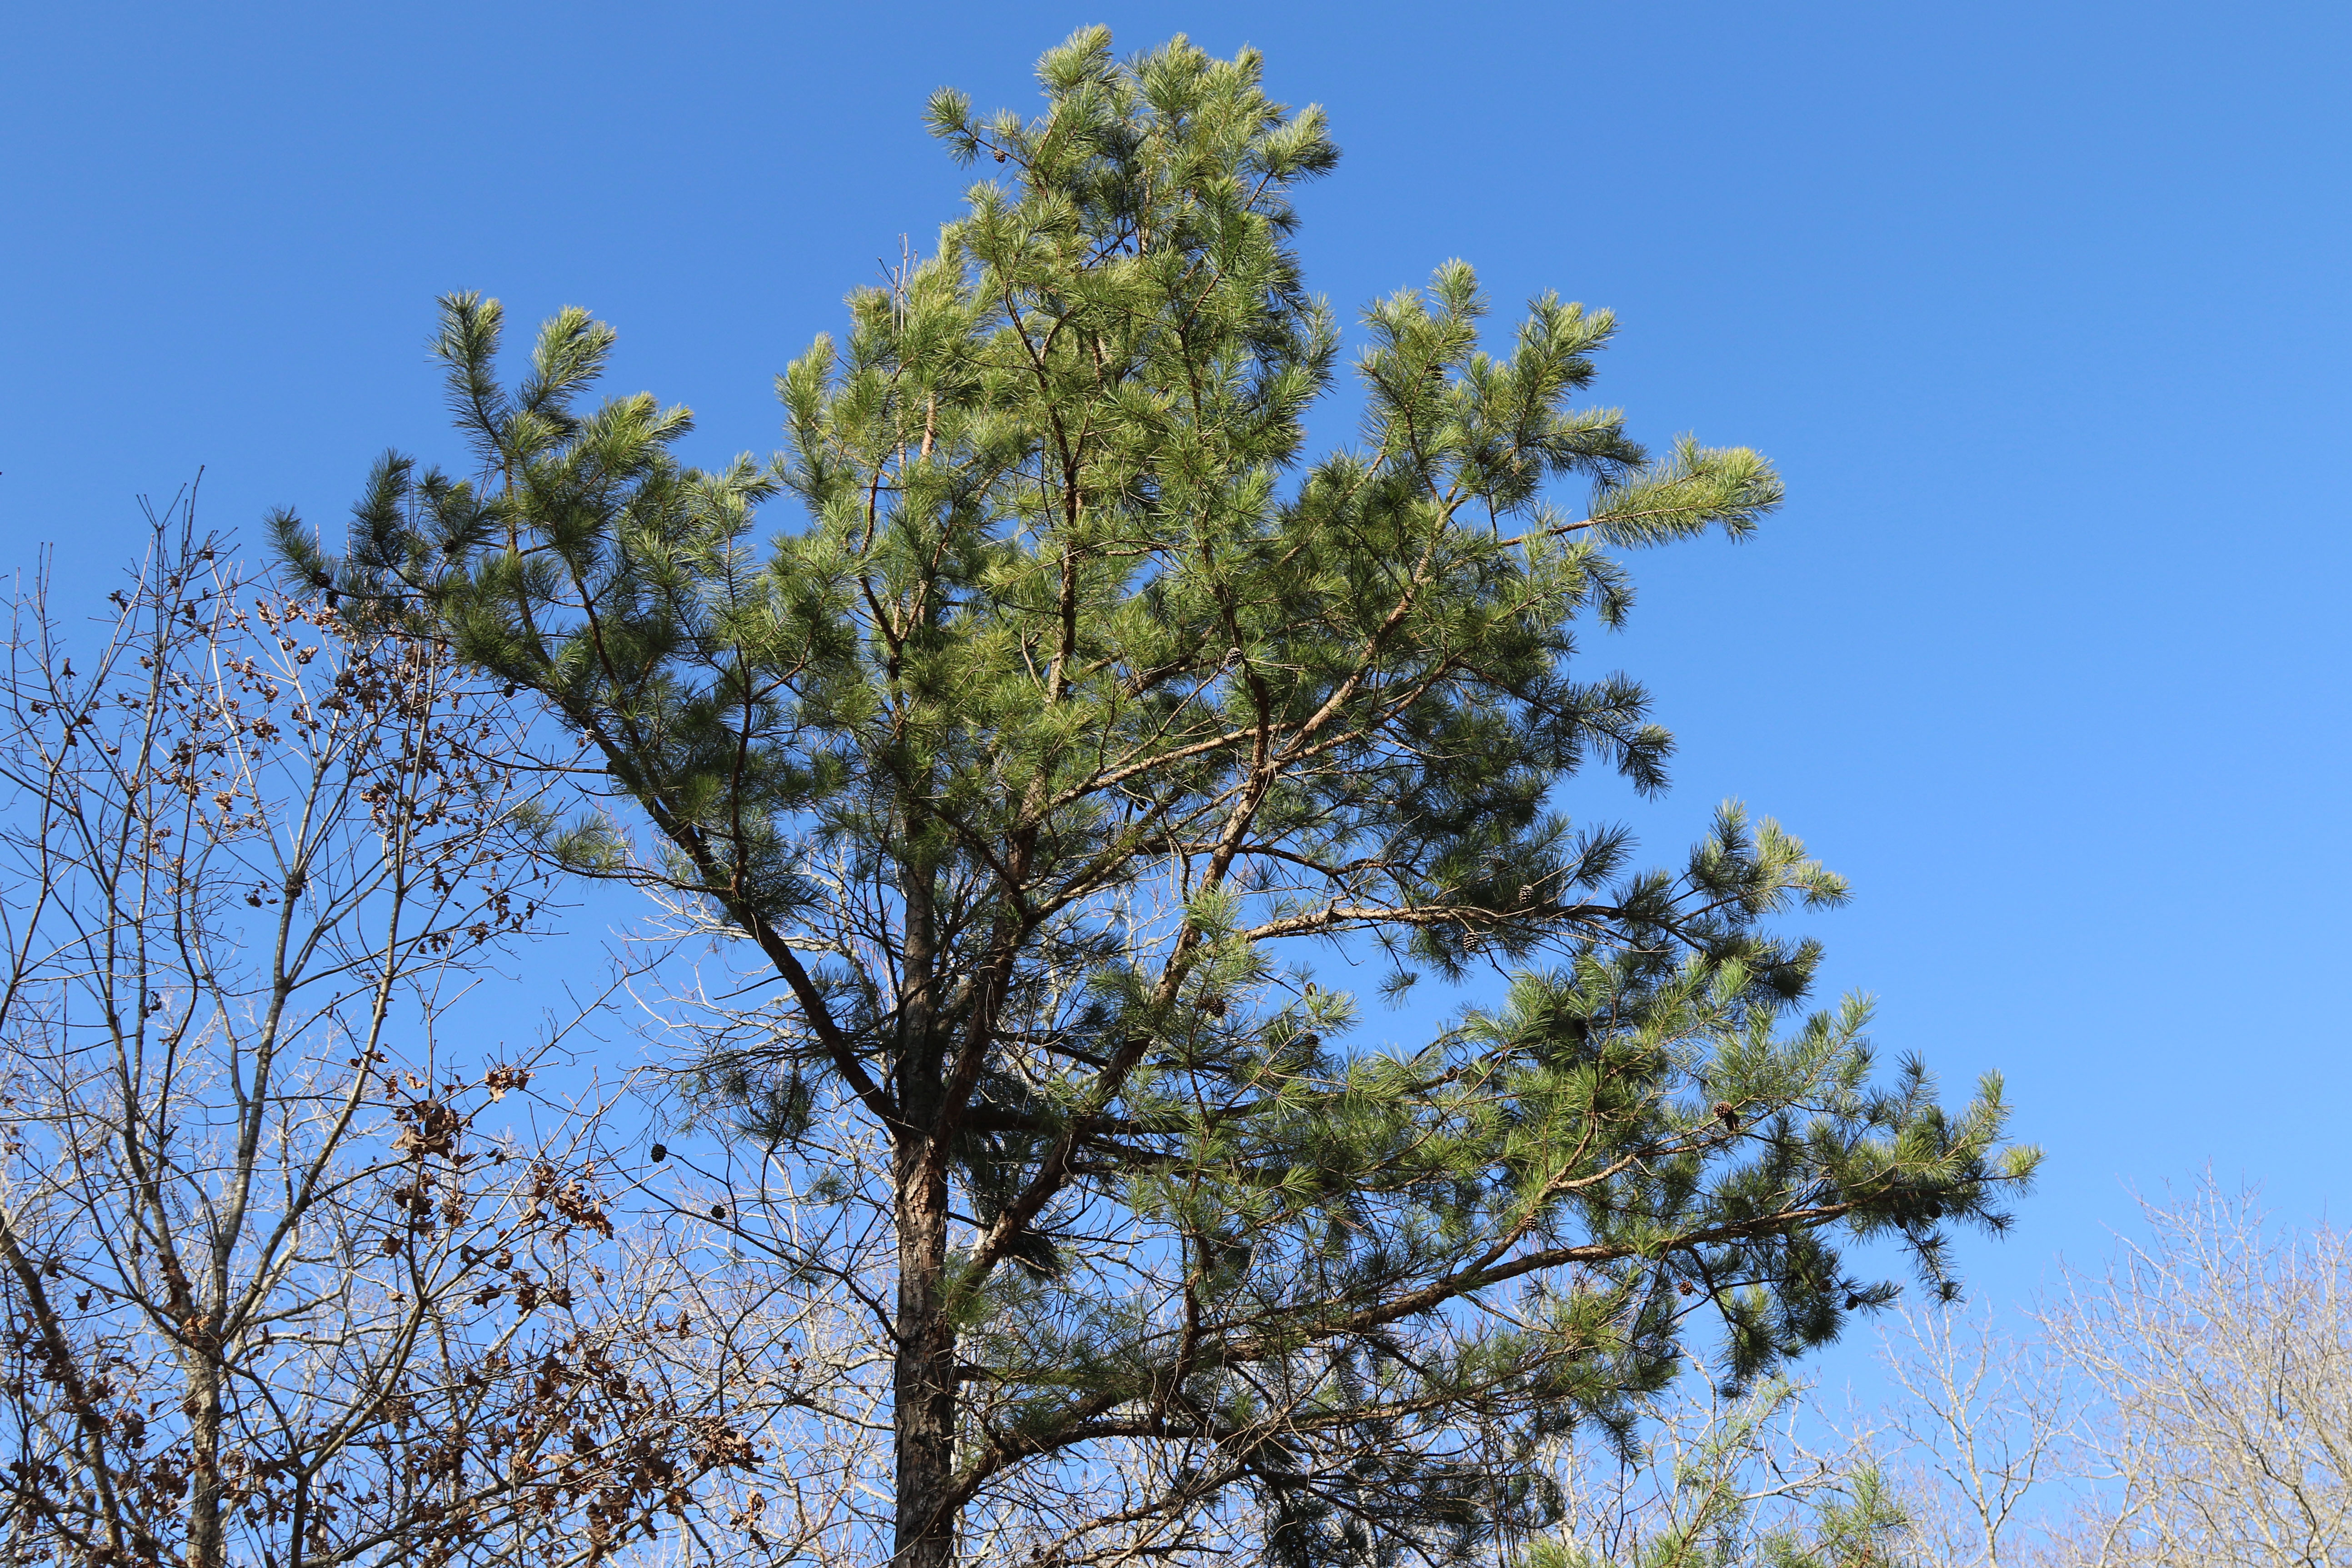 The top of a loblolly pine